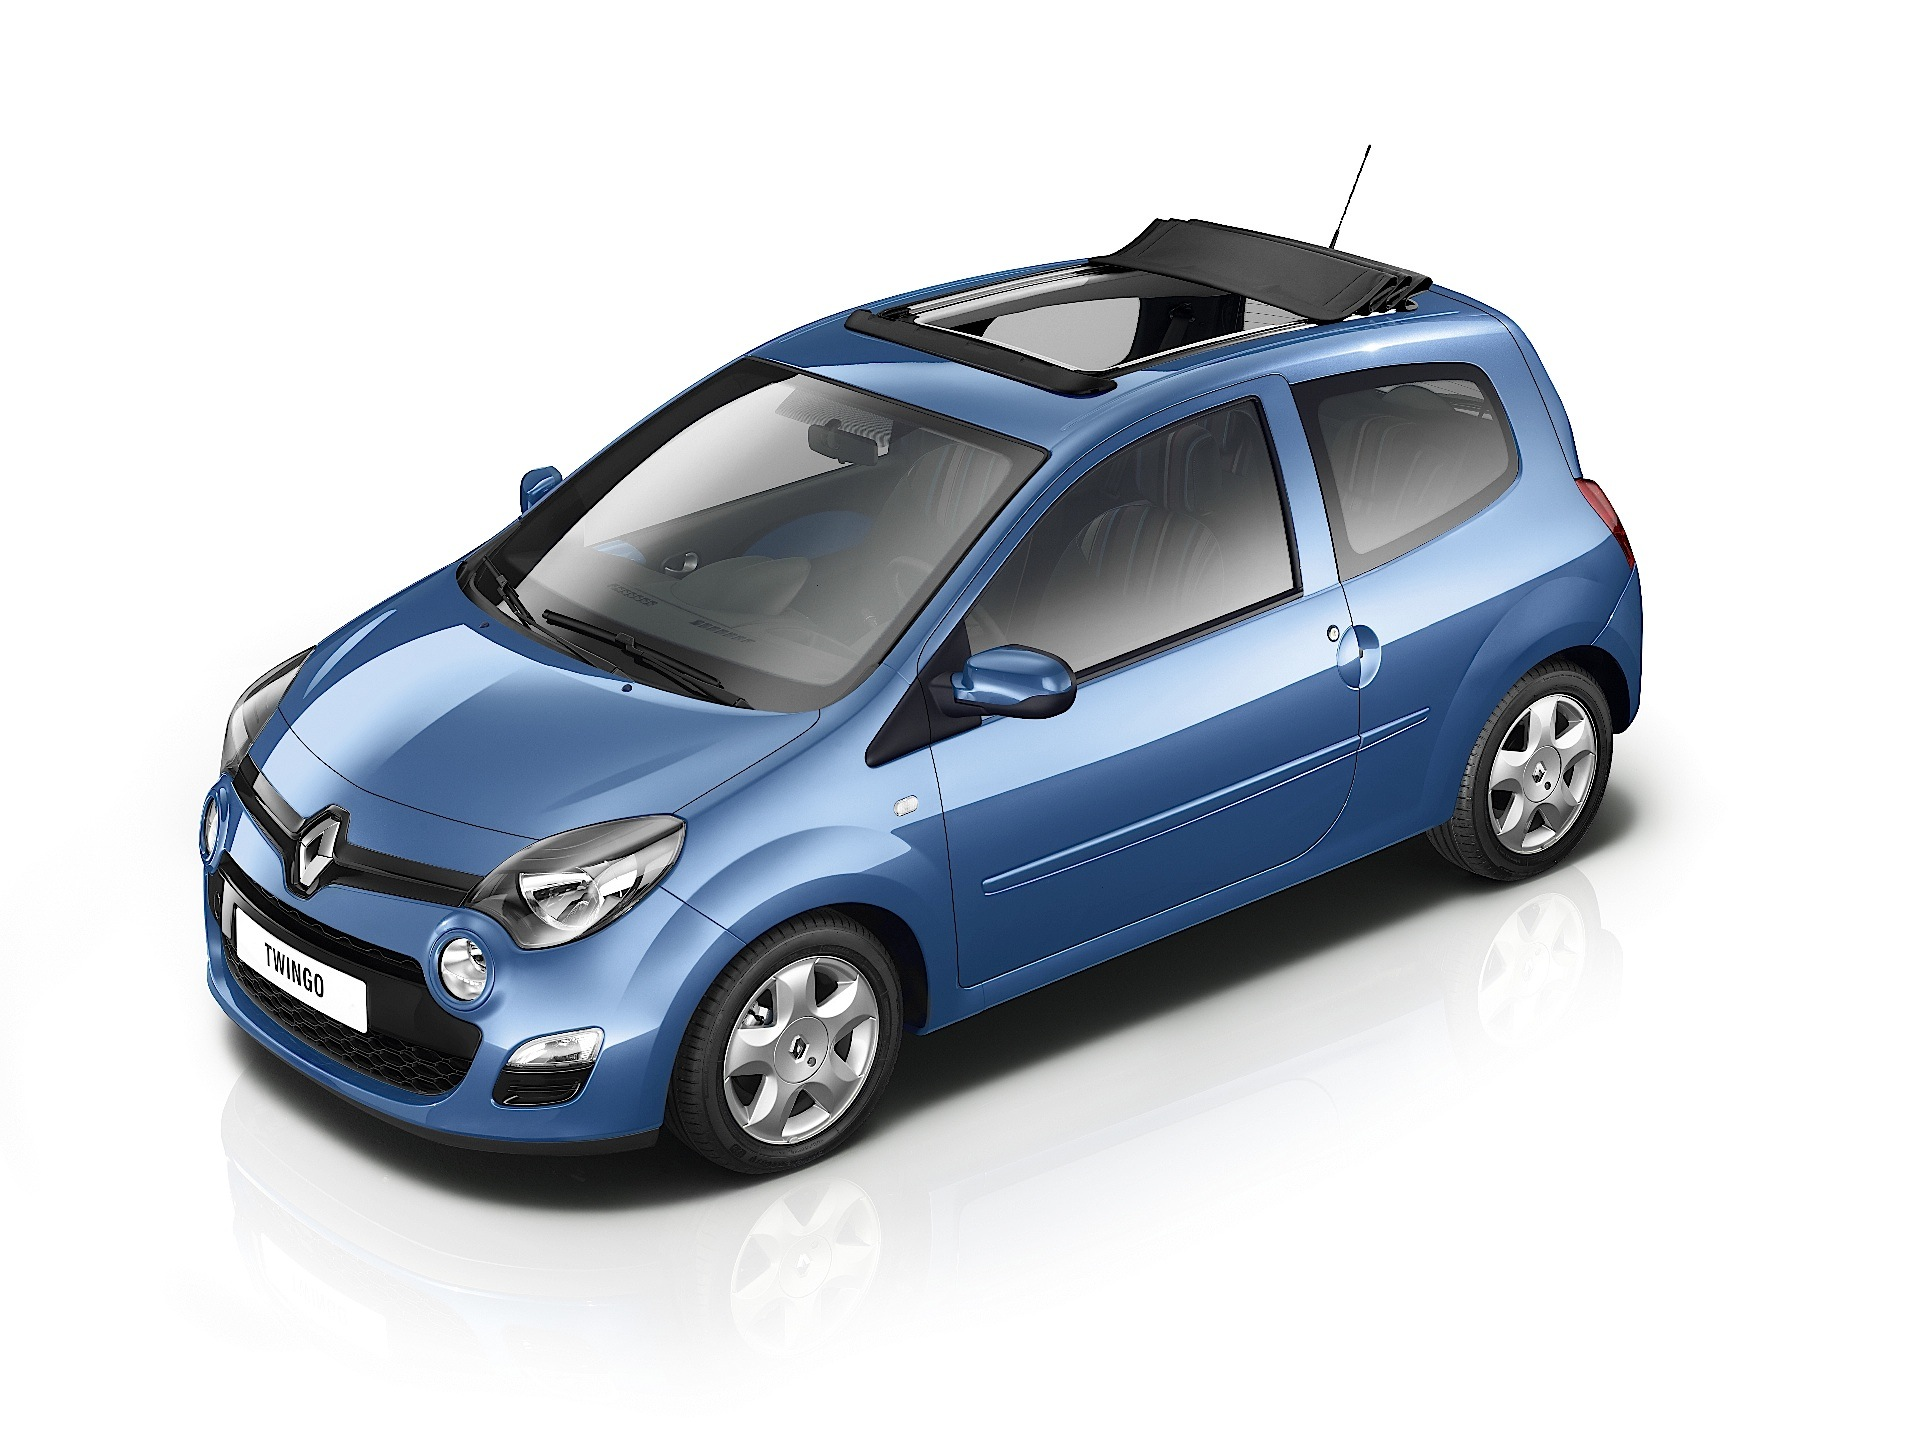 renault twingo specs 2011 2012 2013 2014 autoevolution. Black Bedroom Furniture Sets. Home Design Ideas